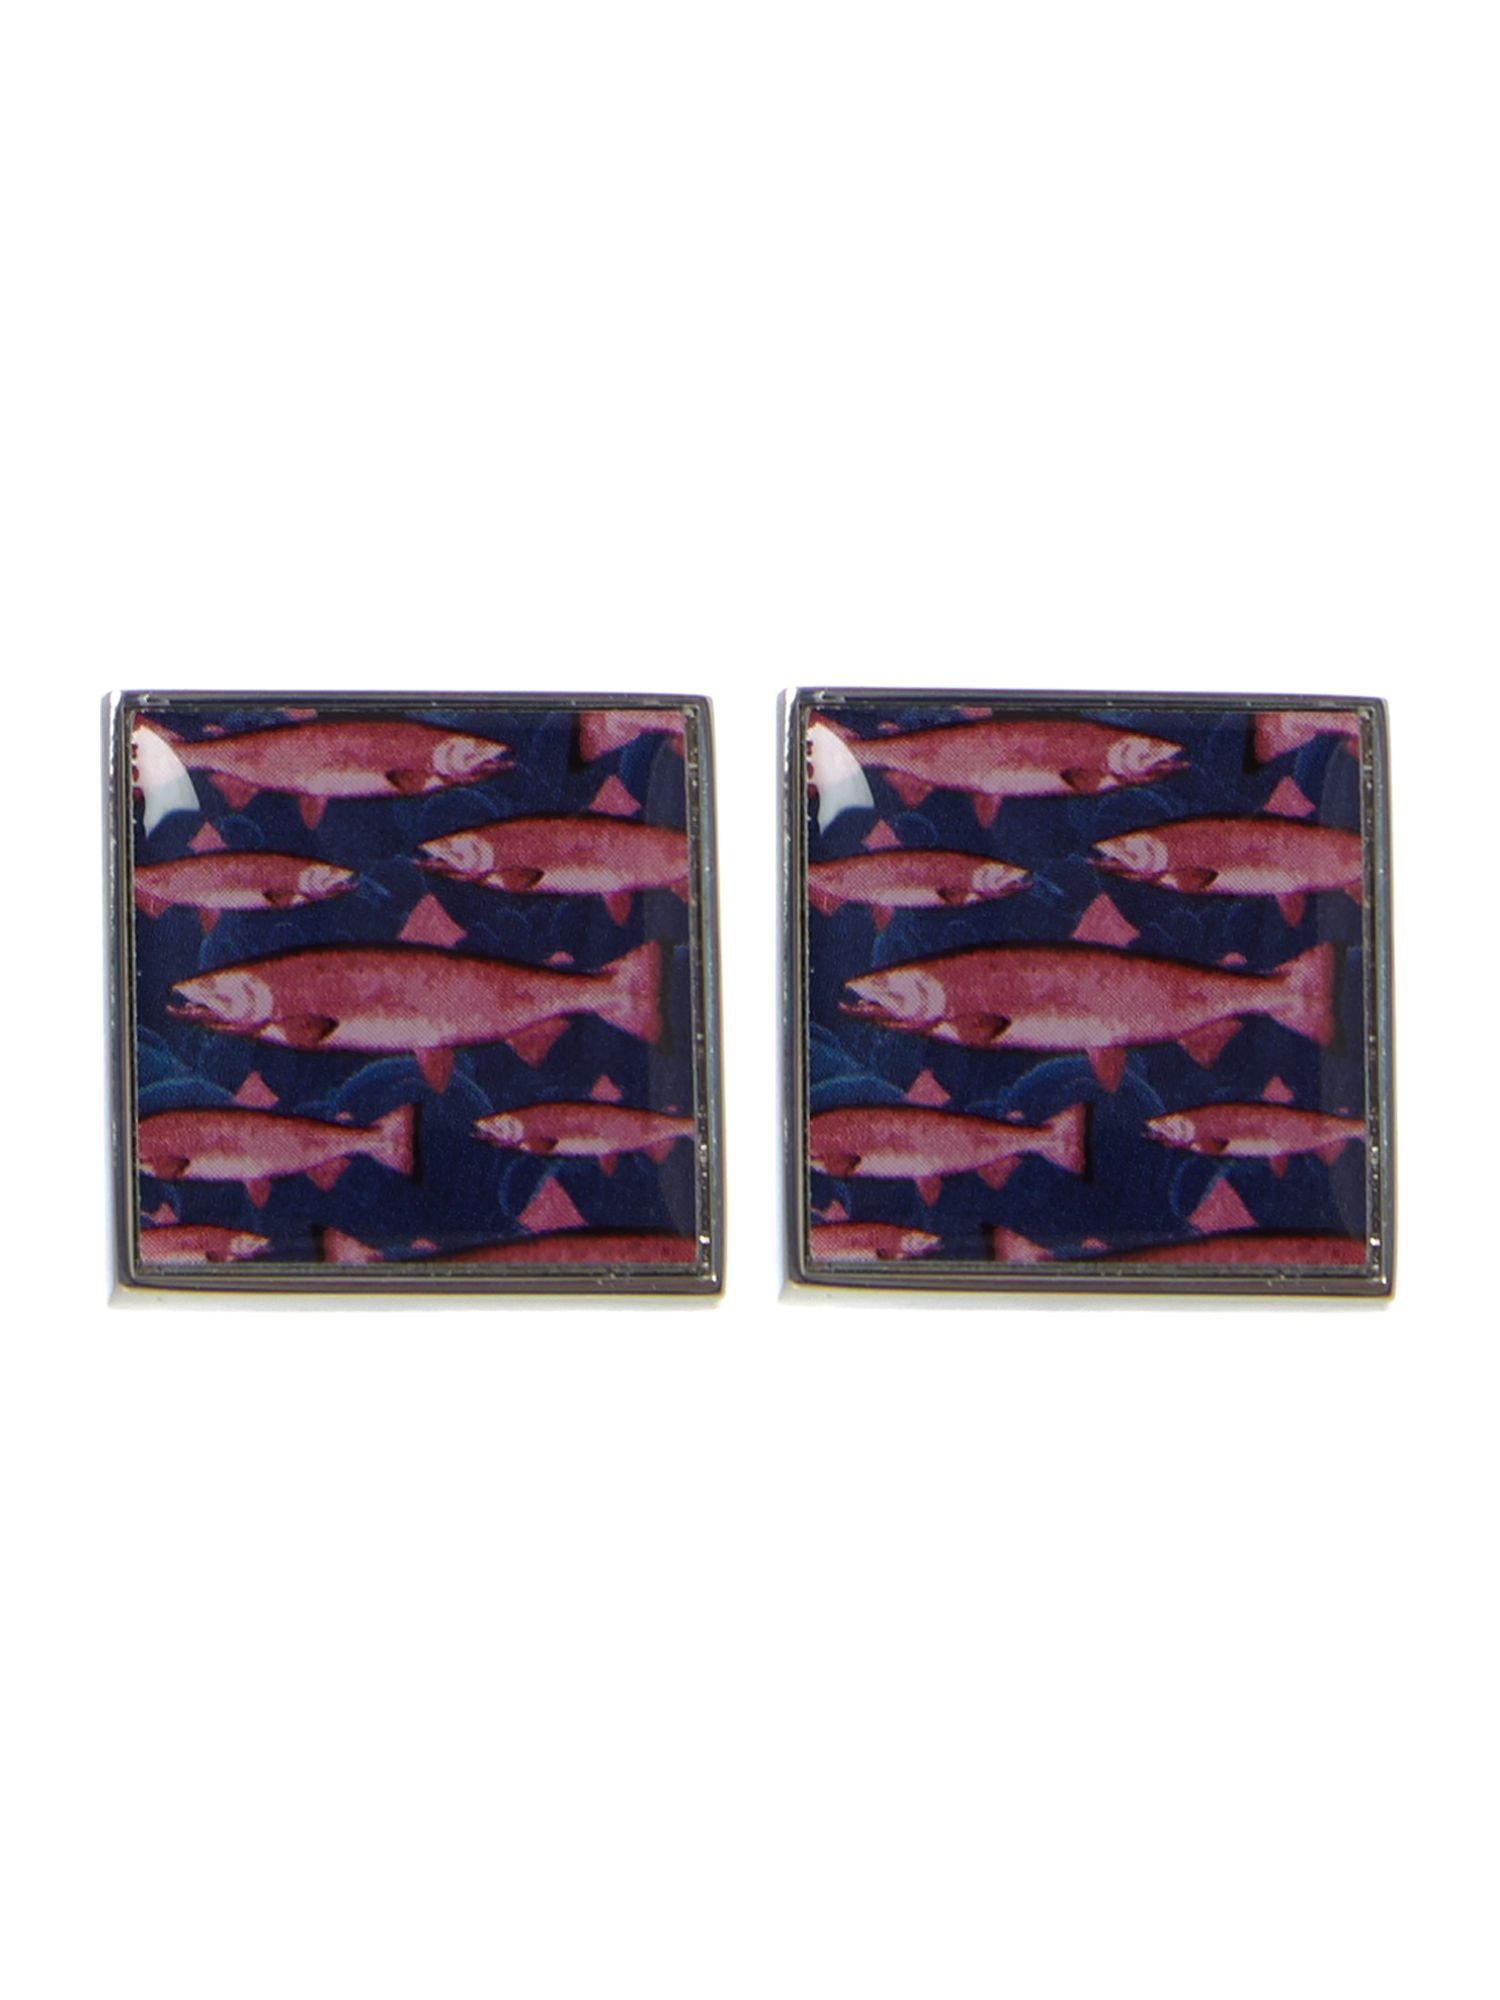 Square fish print cufflinks